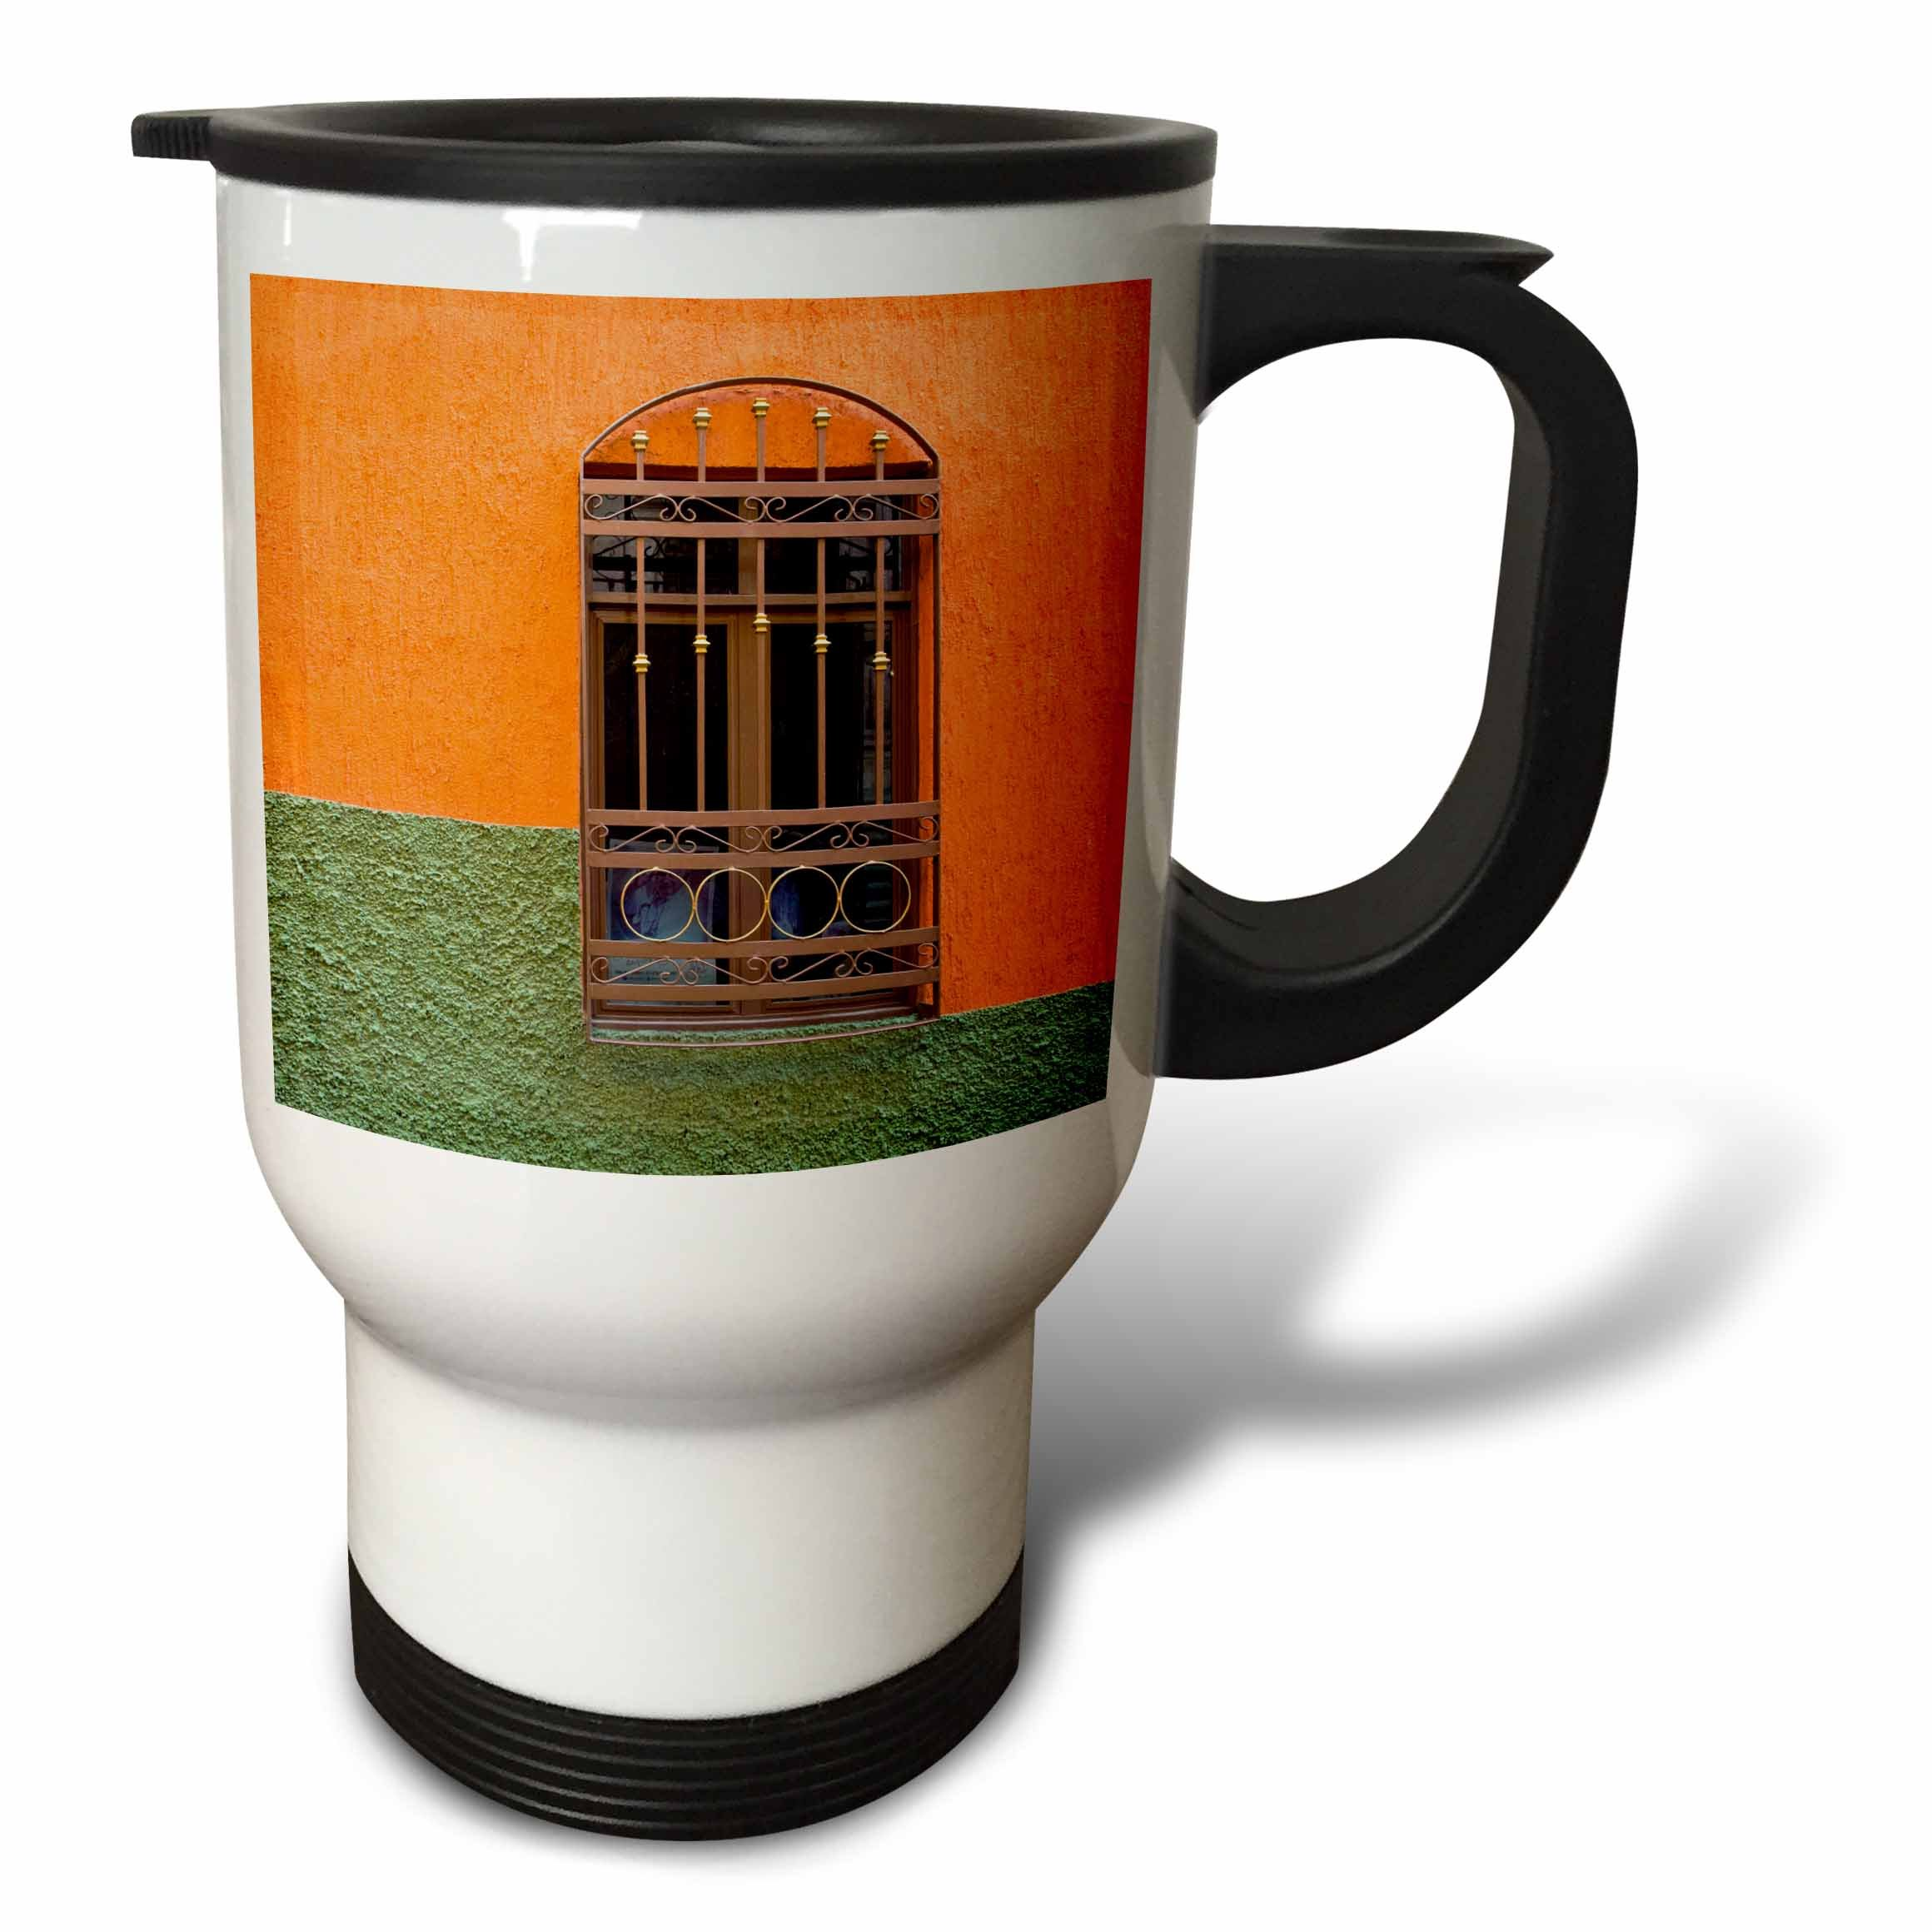 3dRose Danita Delimont - Architecture - Mexico, Guanajuato, Ornate window in a colorful back alley - 14oz Stainless Steel Travel Mug (tm_278308_1)